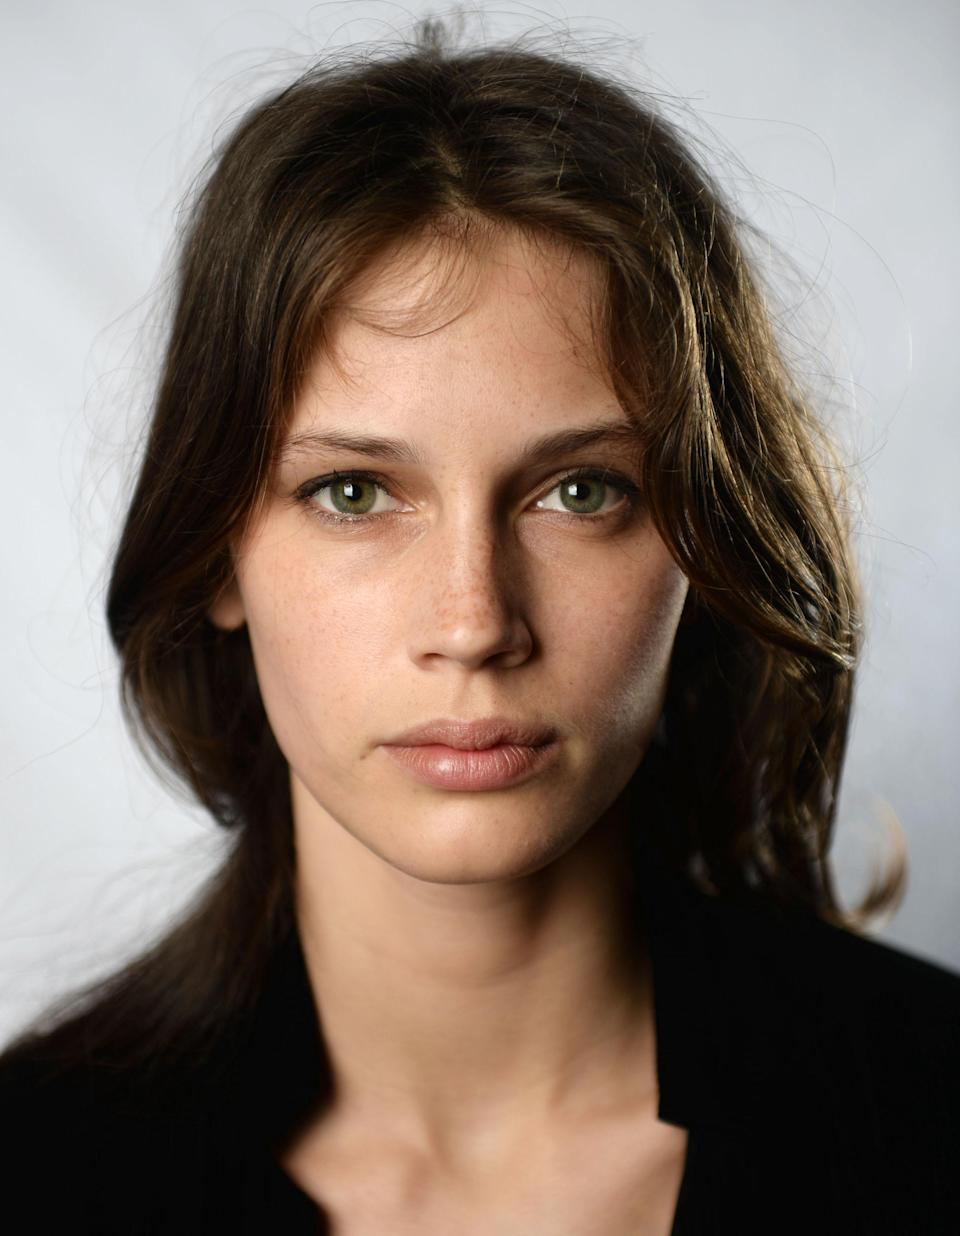 <p>They say there is no beauty like a French beauty (it's the French who say that, by the way), and in the case of model-turned-actress Marine Vacth<span> they may have a point. The star of 2013's foreign language hit <em>Jeune & Jolie</em><span> ('Young & Beautiful')</span><span>, her upturned gaze briefly adorned the sides of buses and tube stations across London causing more than a few commuter collisions.</span></span></p>